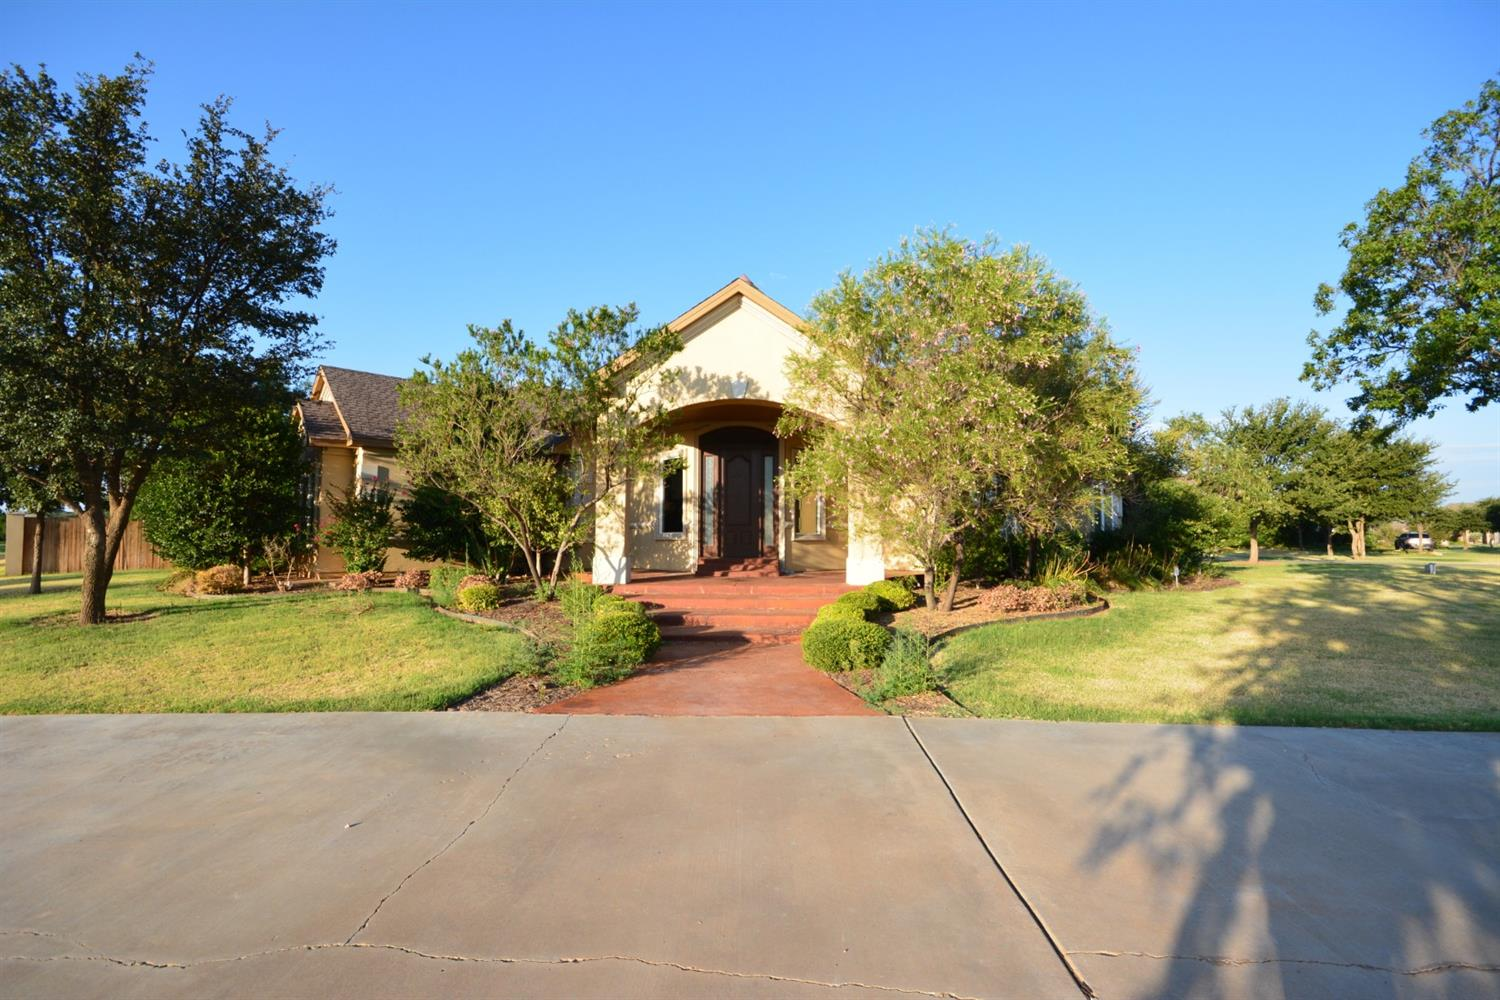 5501 County Road 7530, Lubbock in Lubbock County, TX 79424 Home for Sale